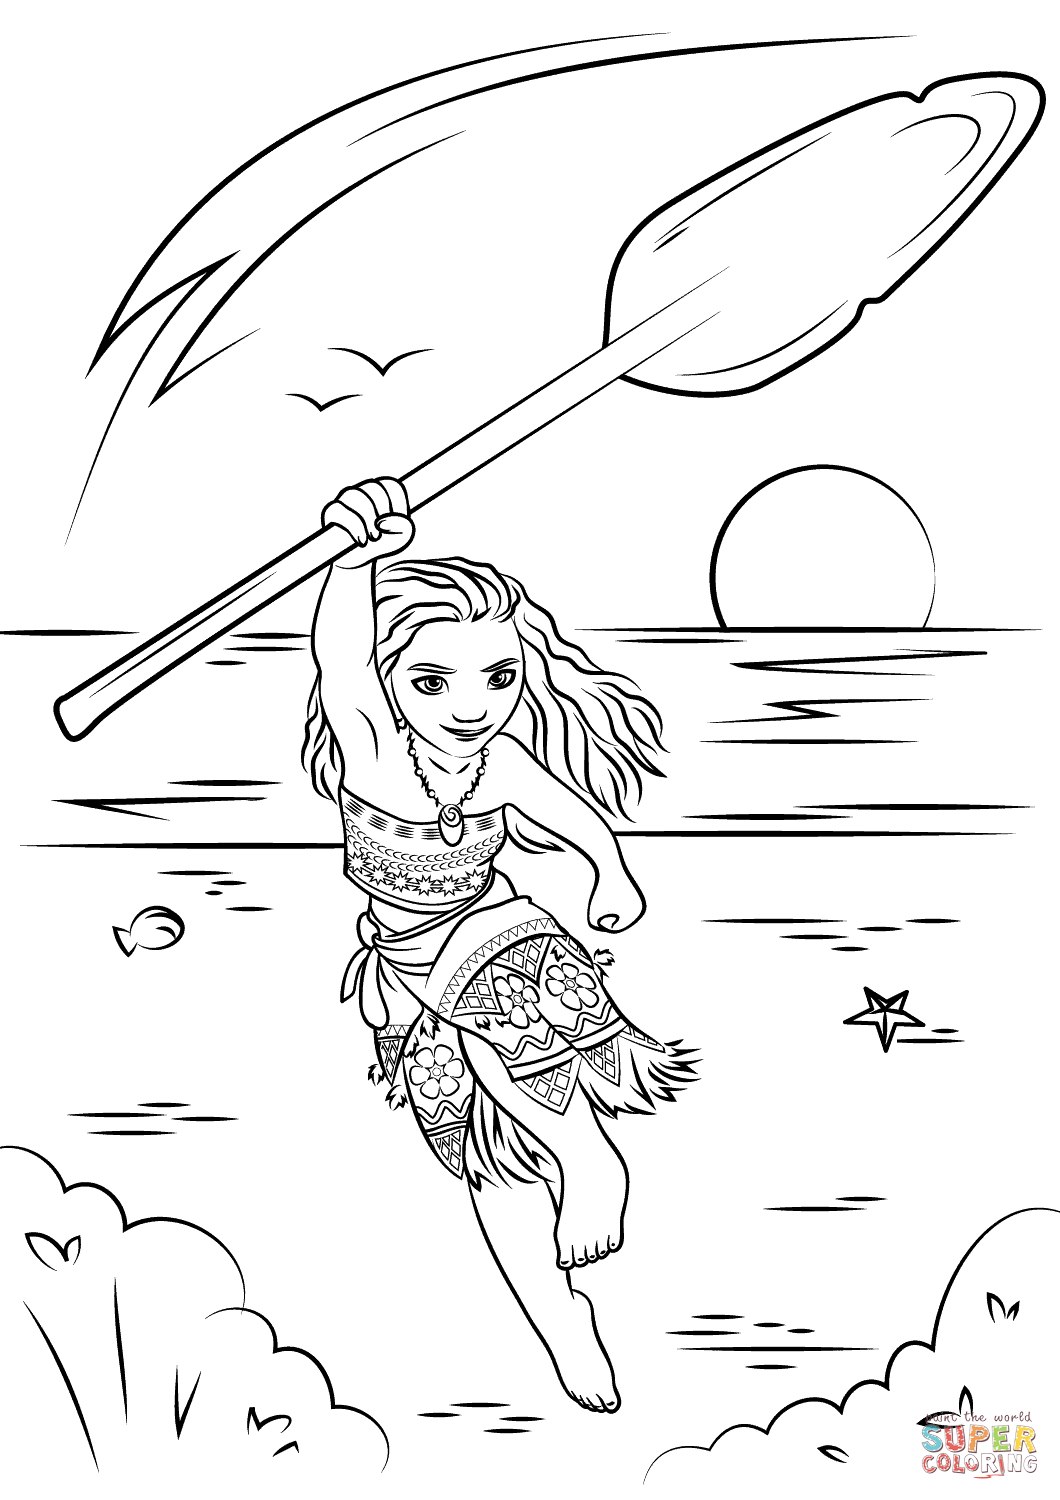 Click the moana coloring pages to view printable version or color it online compatible with ipad and android tablets